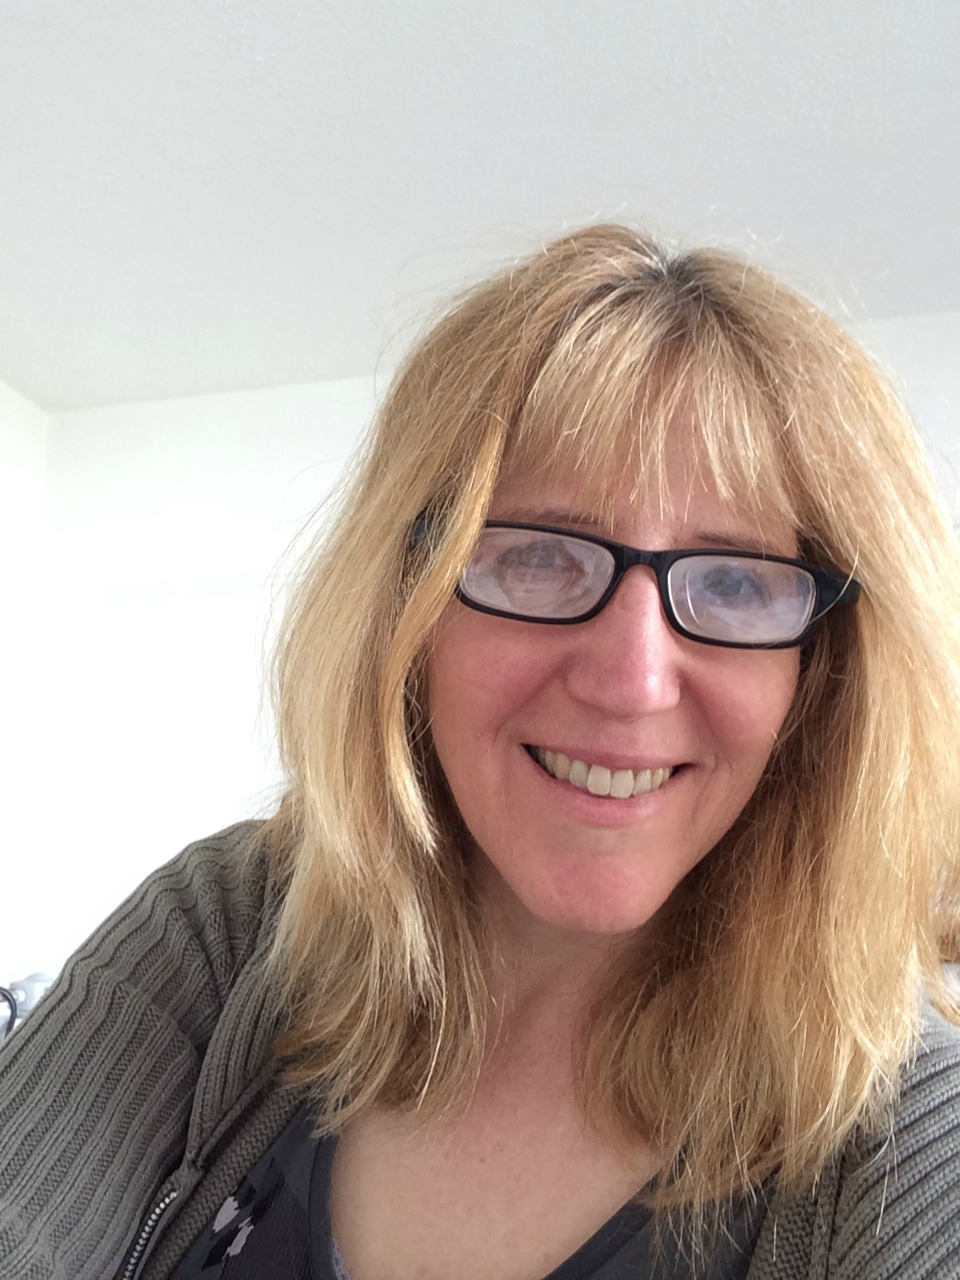 Linda Hobbis wearing Eyejusters adjustable reading glasses